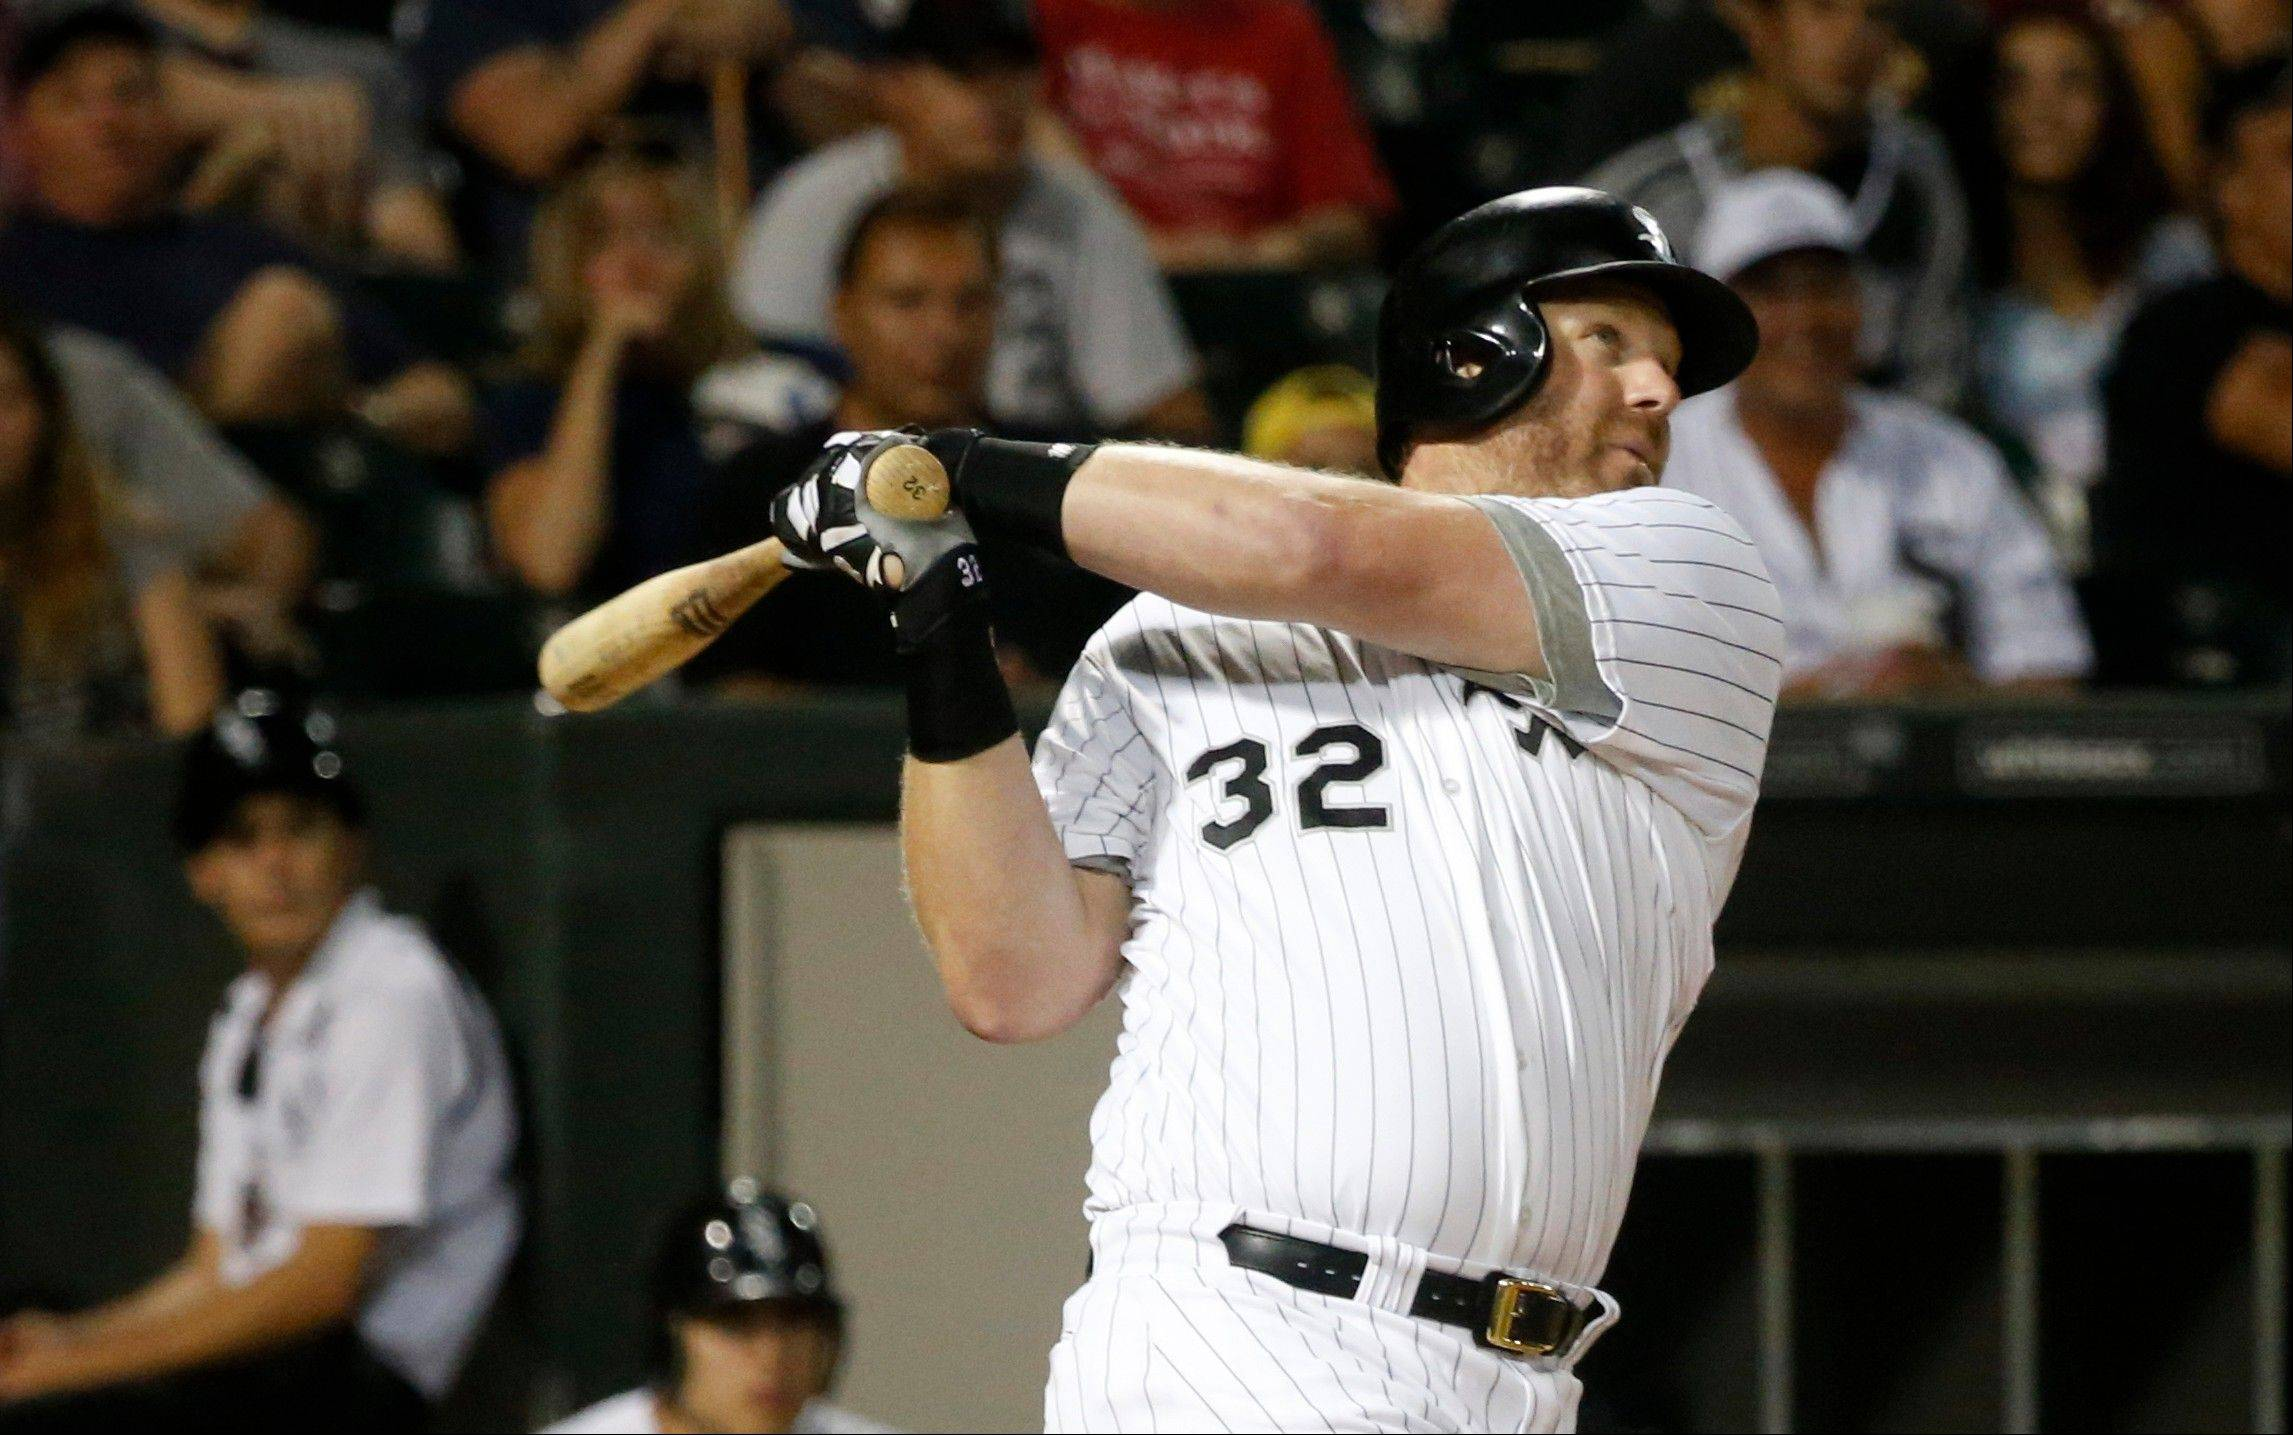 The White Sox's Adam Dunn watches his two-run home run off Houston Astros starting pitcher Brett Oberholtzer, also scoring Paul Konerko, during the sixth inning of the game Monday in Chicago.